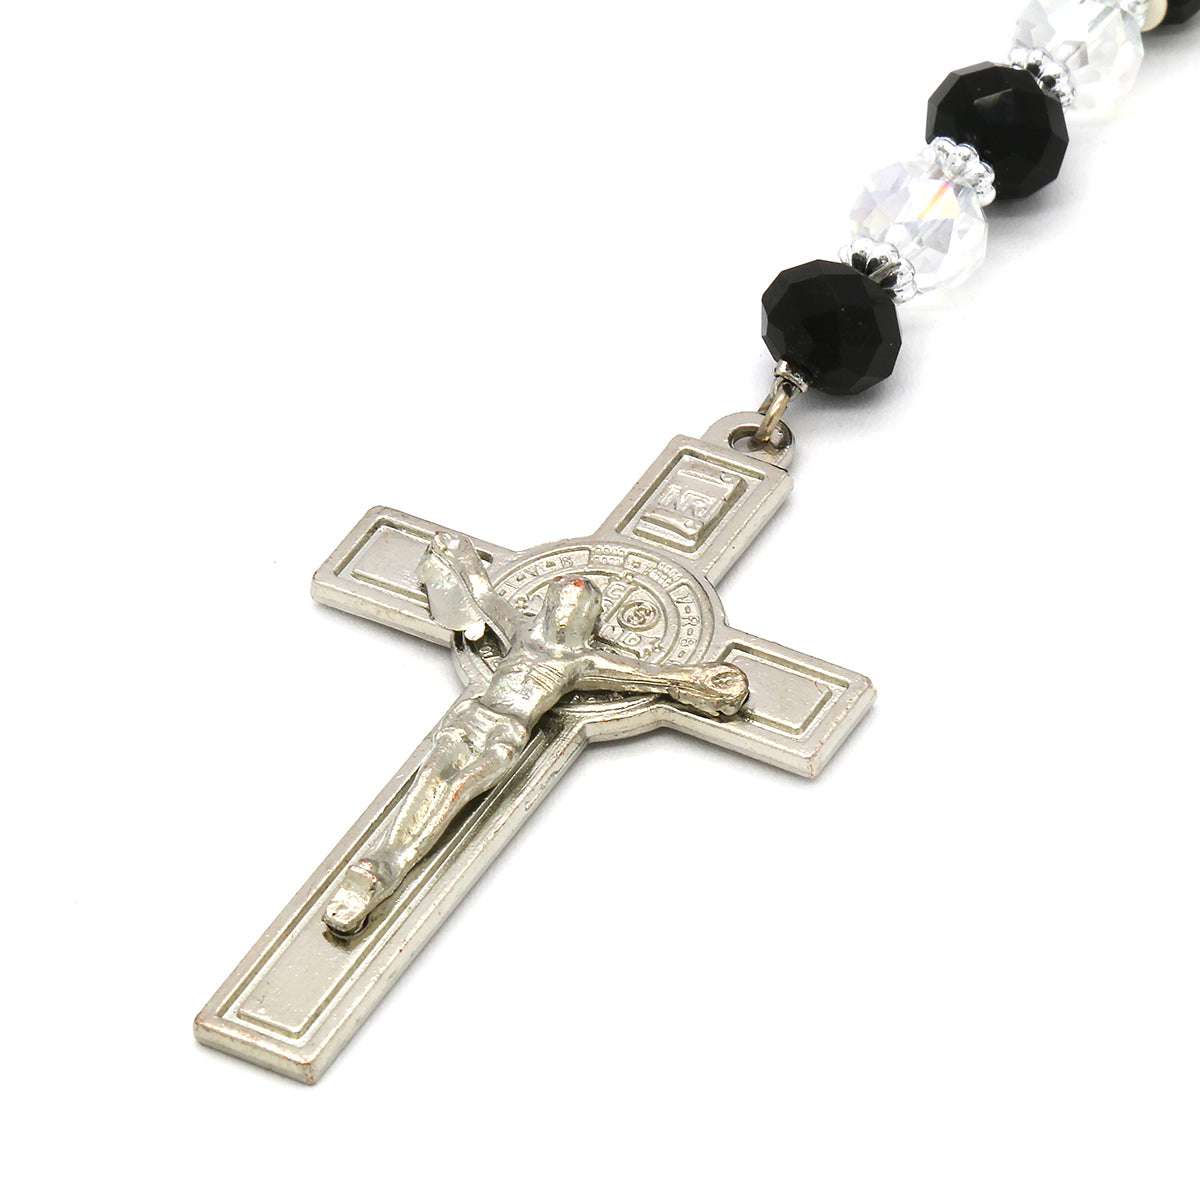 8MM Black/Clear Crystal Rosary Jesus Medal & SanBenito Cross